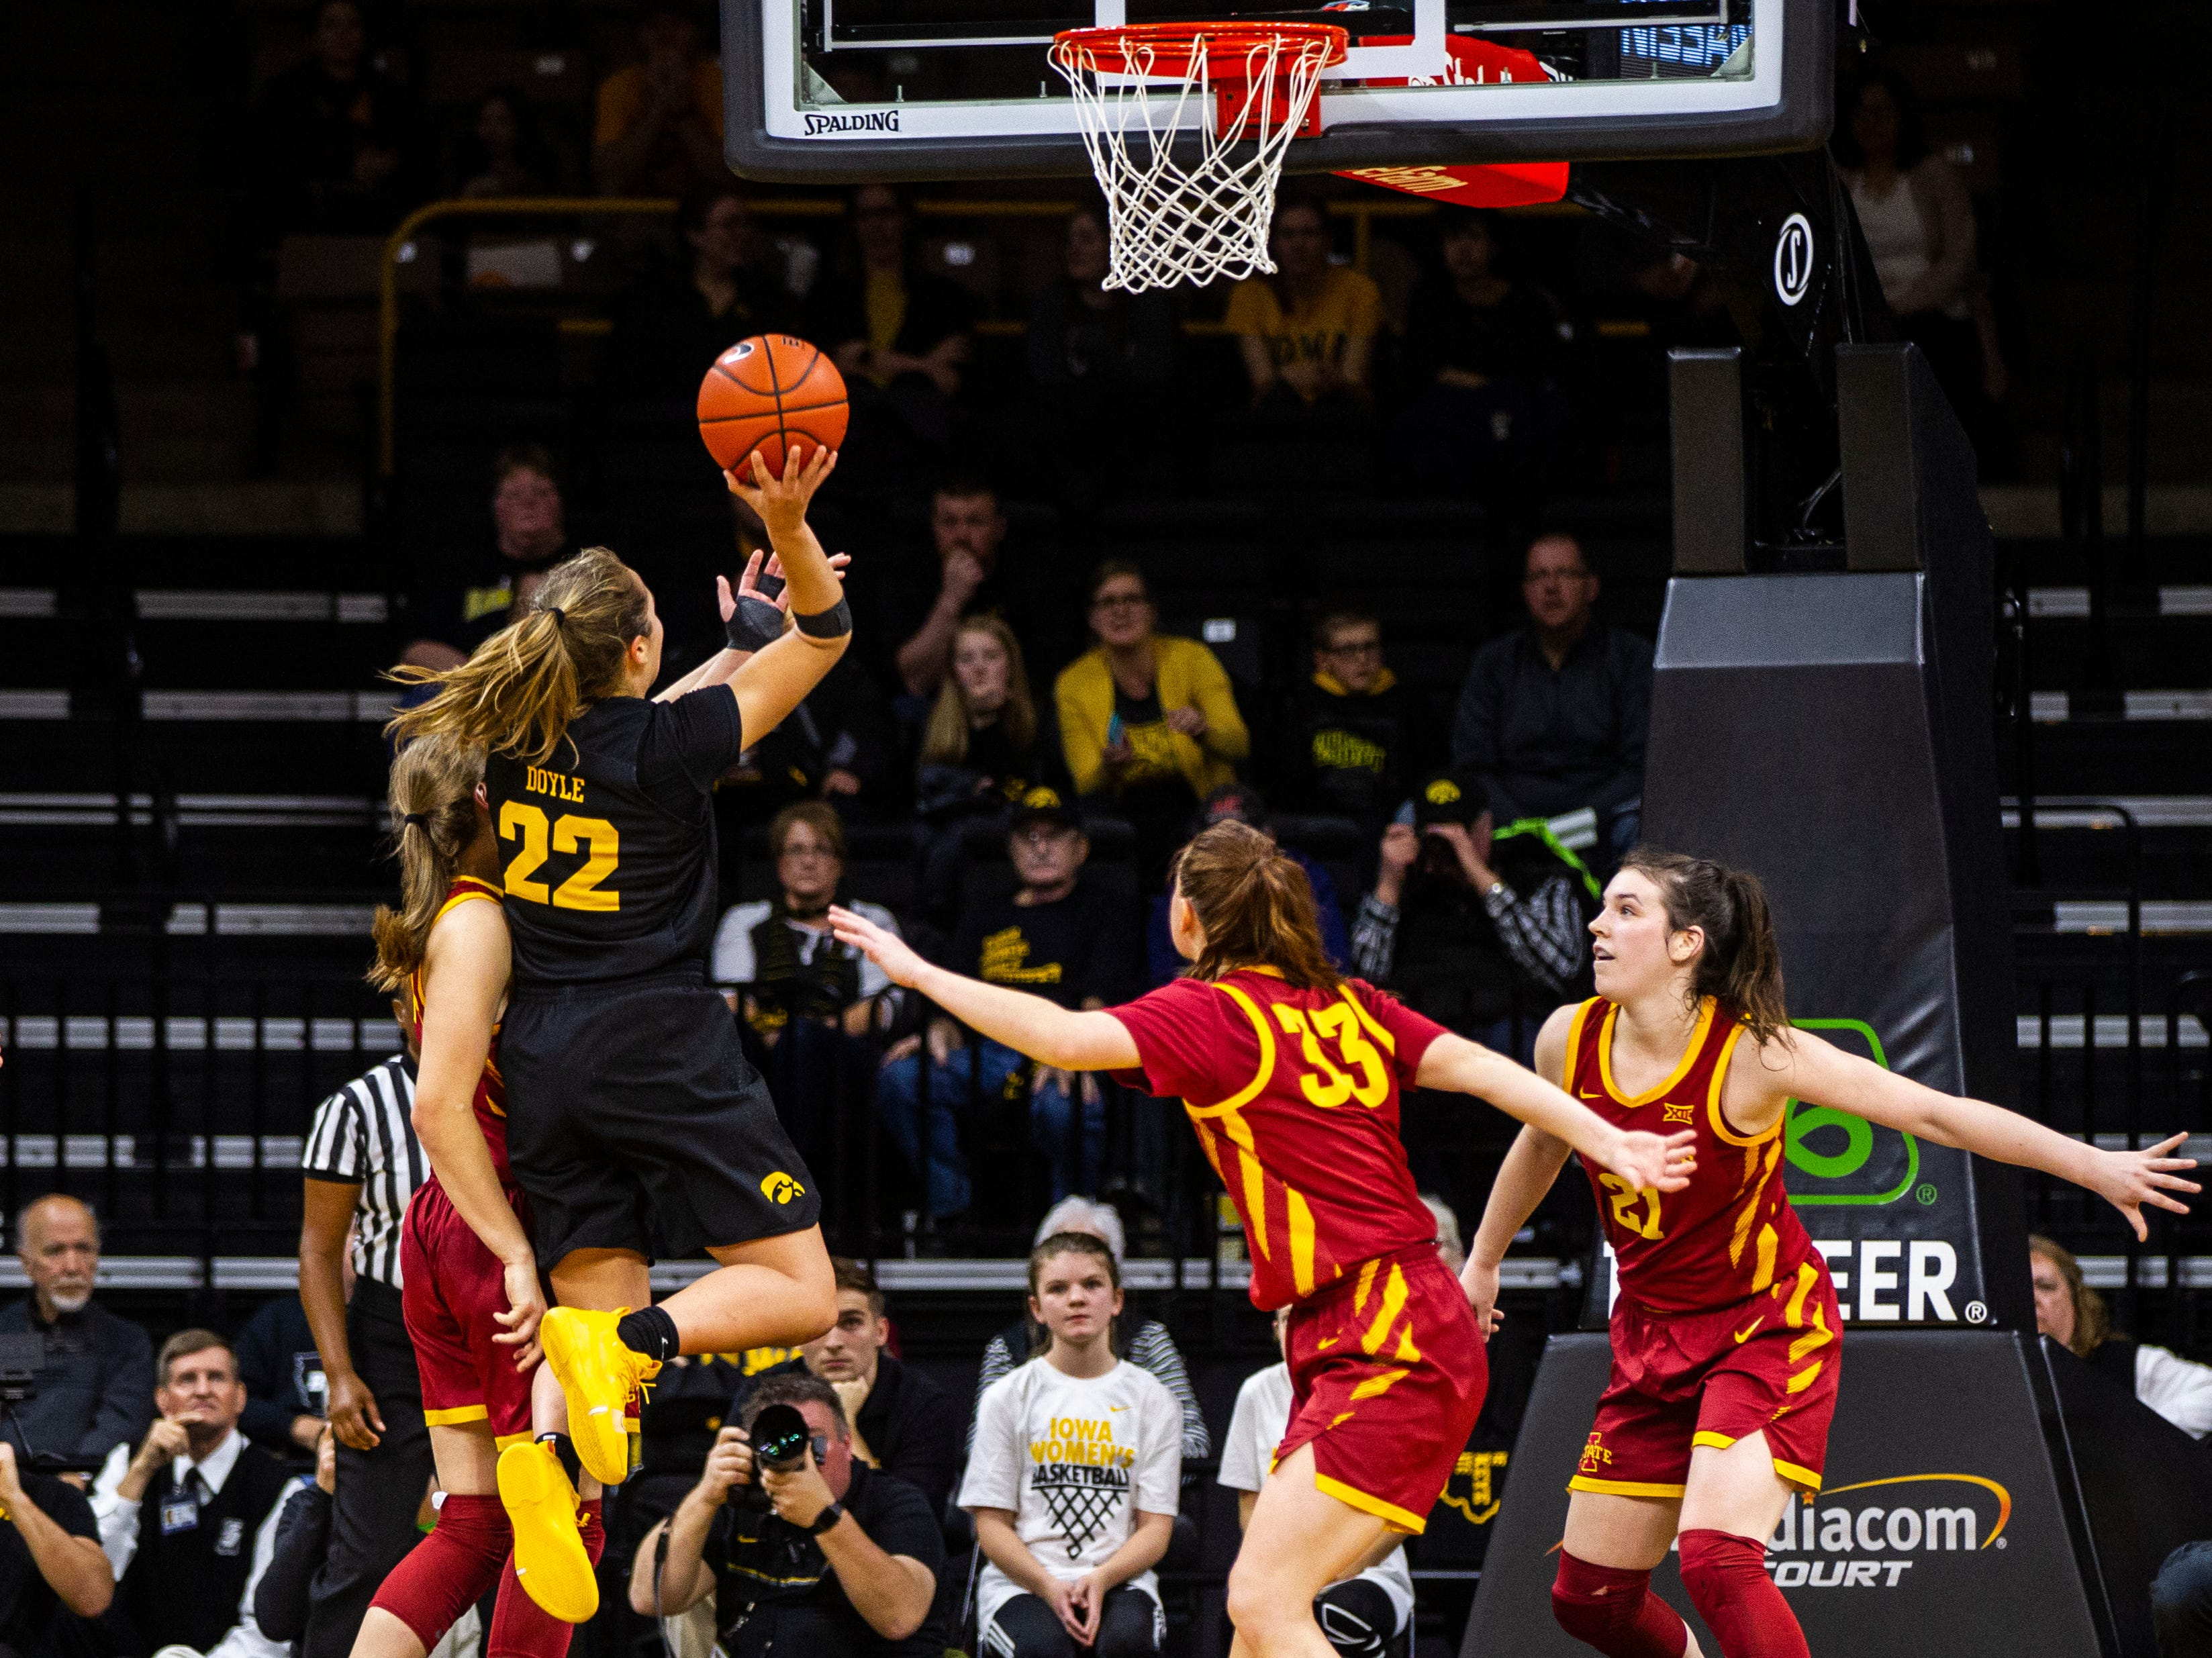 Iowa guard Kathleen Doyle (22) attempts a basket during a Cy-Hawk series NCAA women's basketball game on Wednesday, Dec. 5, 2018, at Carver-Hawkeye Arena in Iowa City.